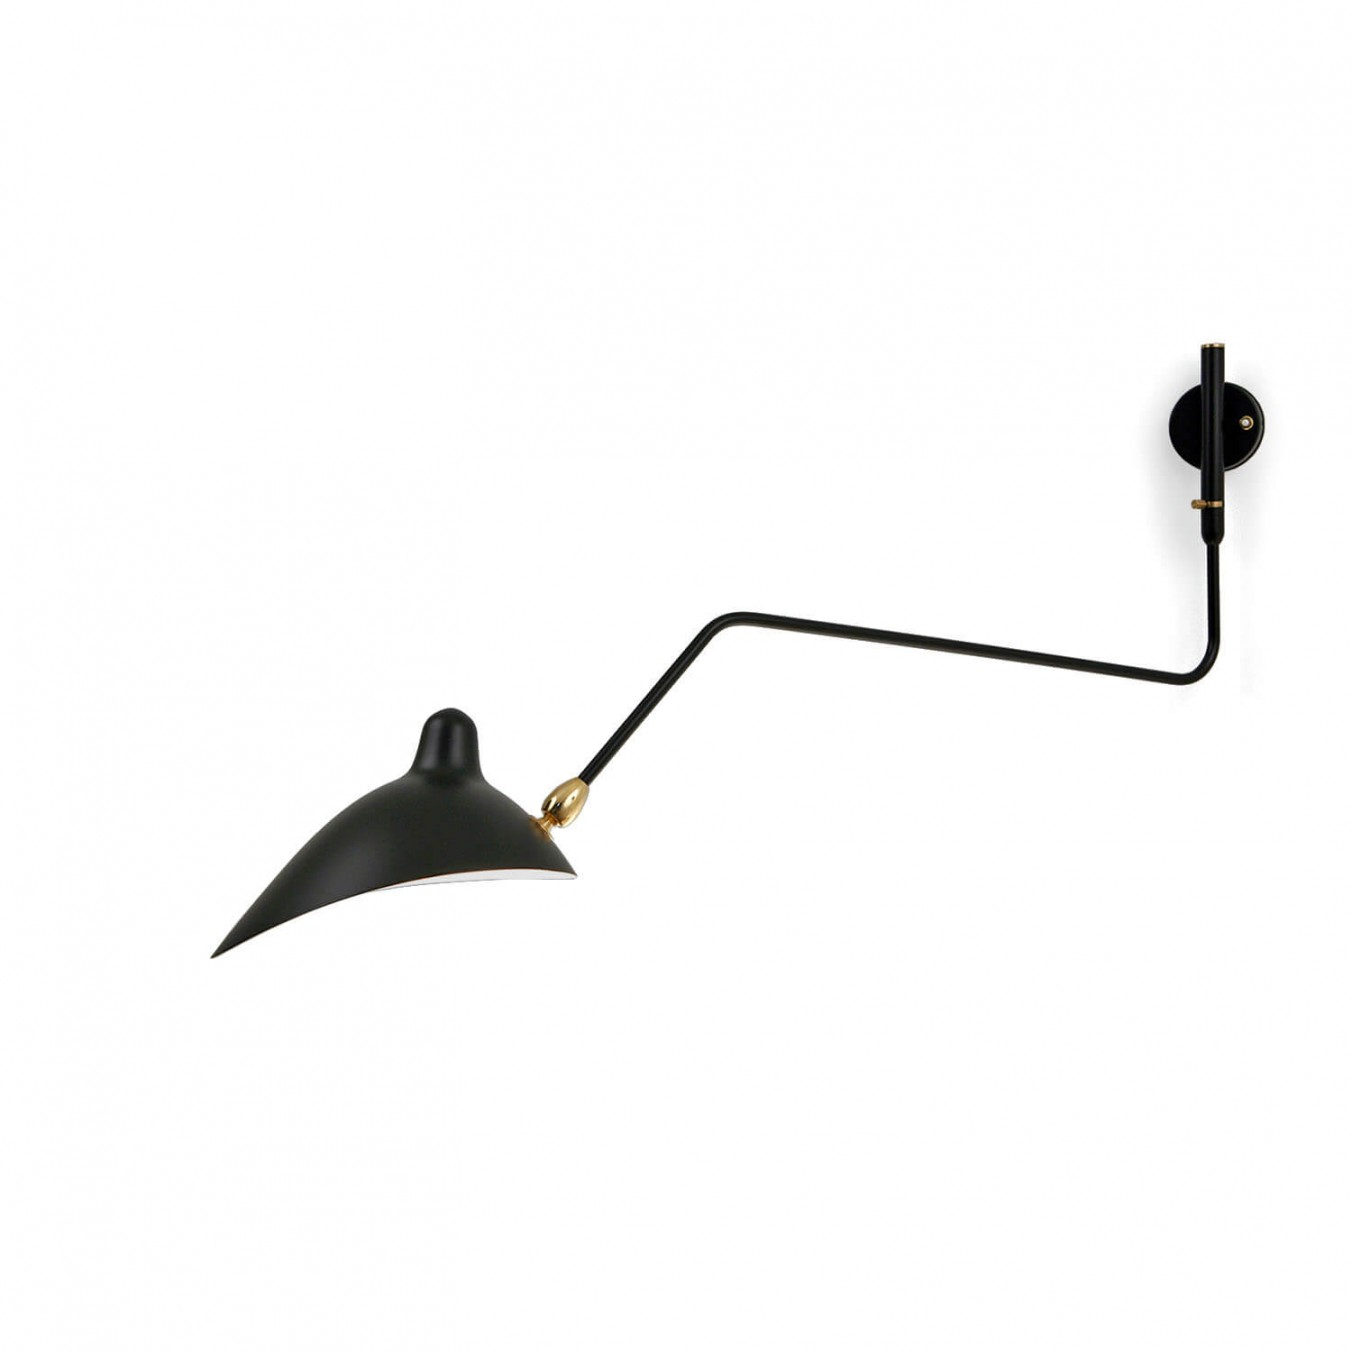 Wall Light with 1 curved pivoting arm